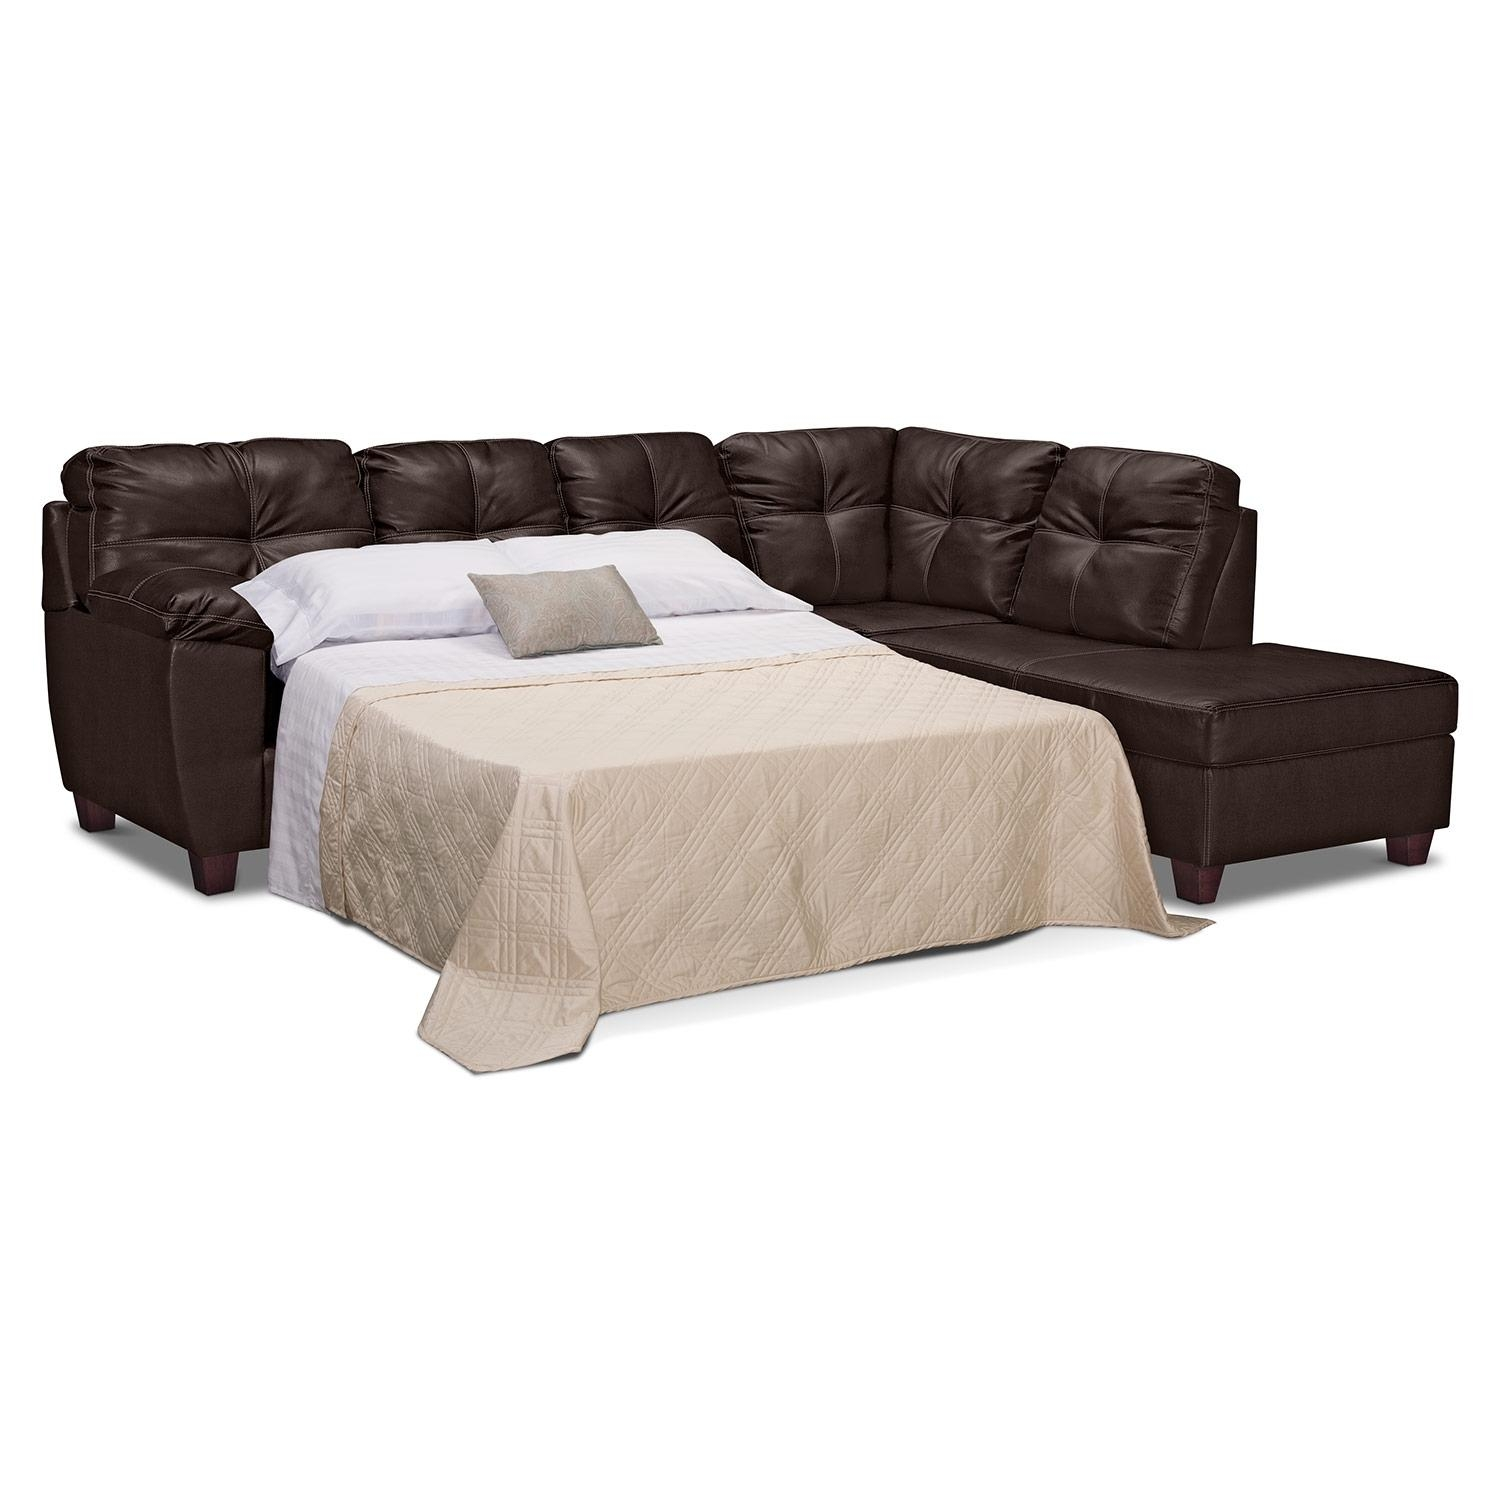 Furniture: Cozy Sleeper Sofa Ikea For Best Sleeper Sofa Ideas Intended For Ikea Sleeper Sofa Sectional (View 19 of 20)